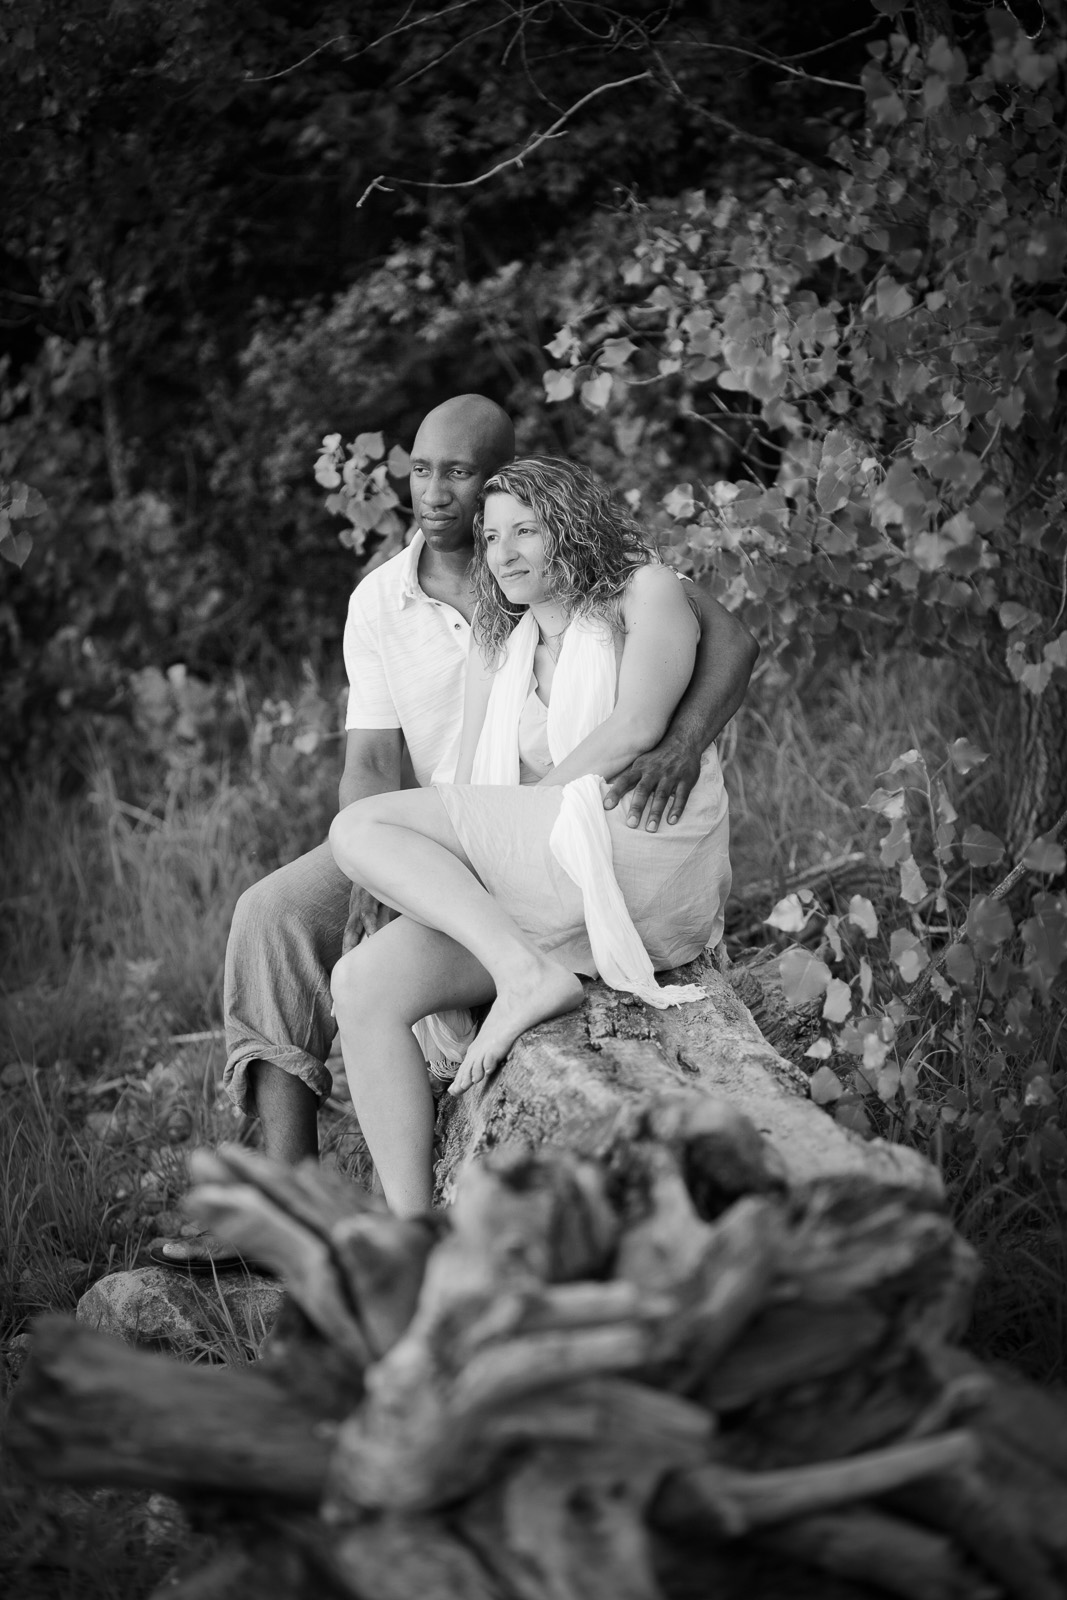 bianca-morello-photography-montreal-couple-engagement-wedding-8.jpg